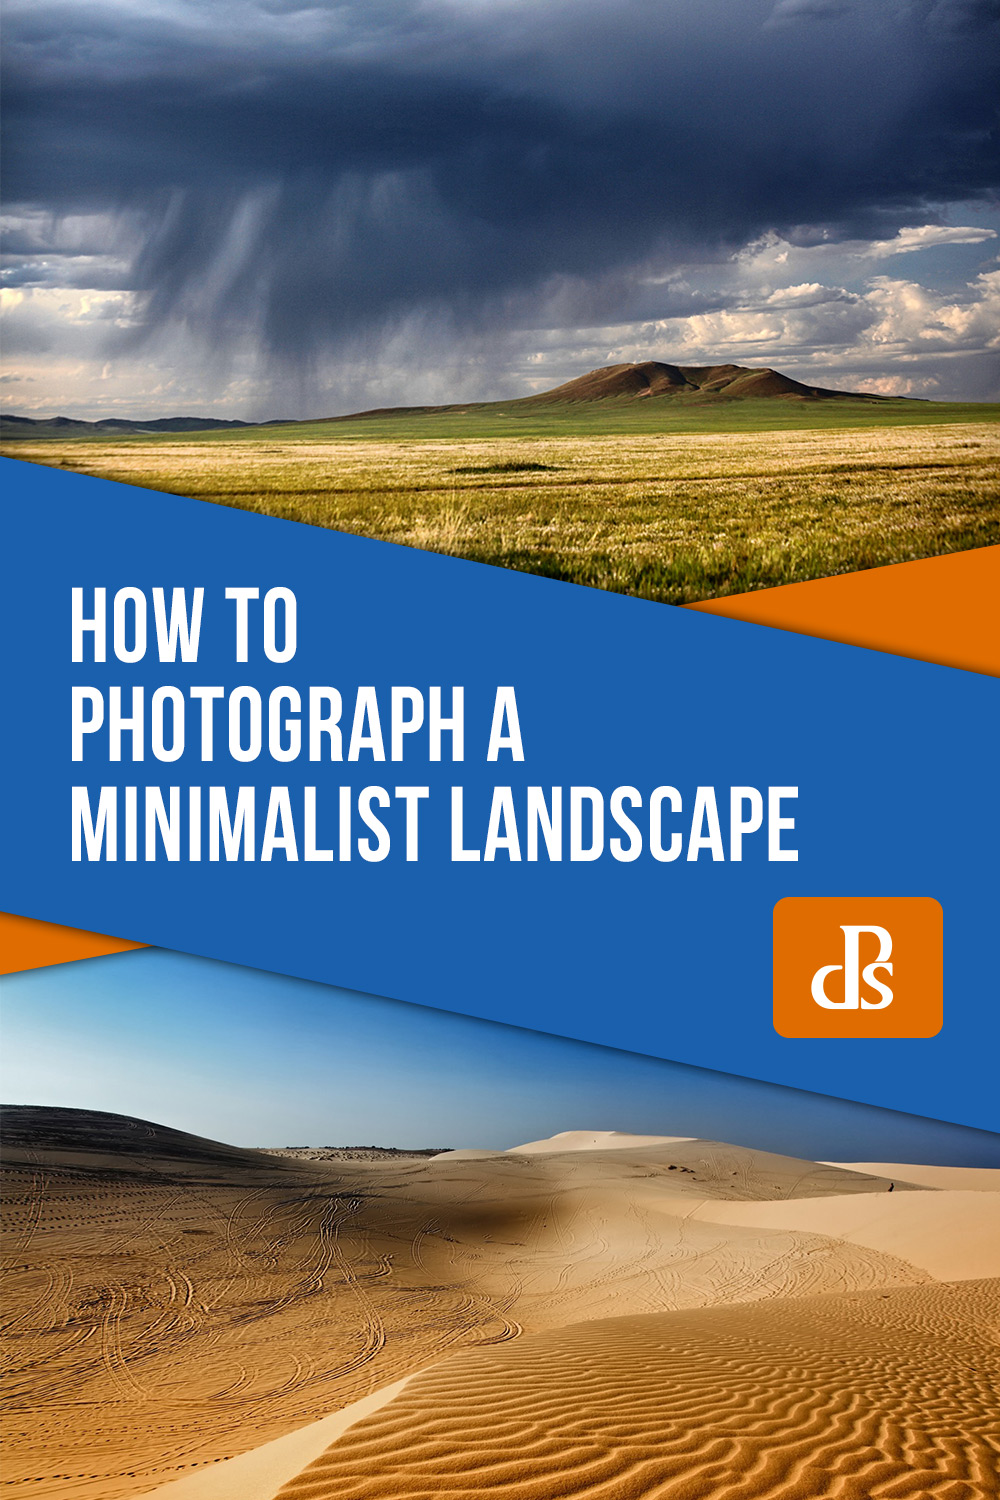 How to Photograph a Minimalist Landscape